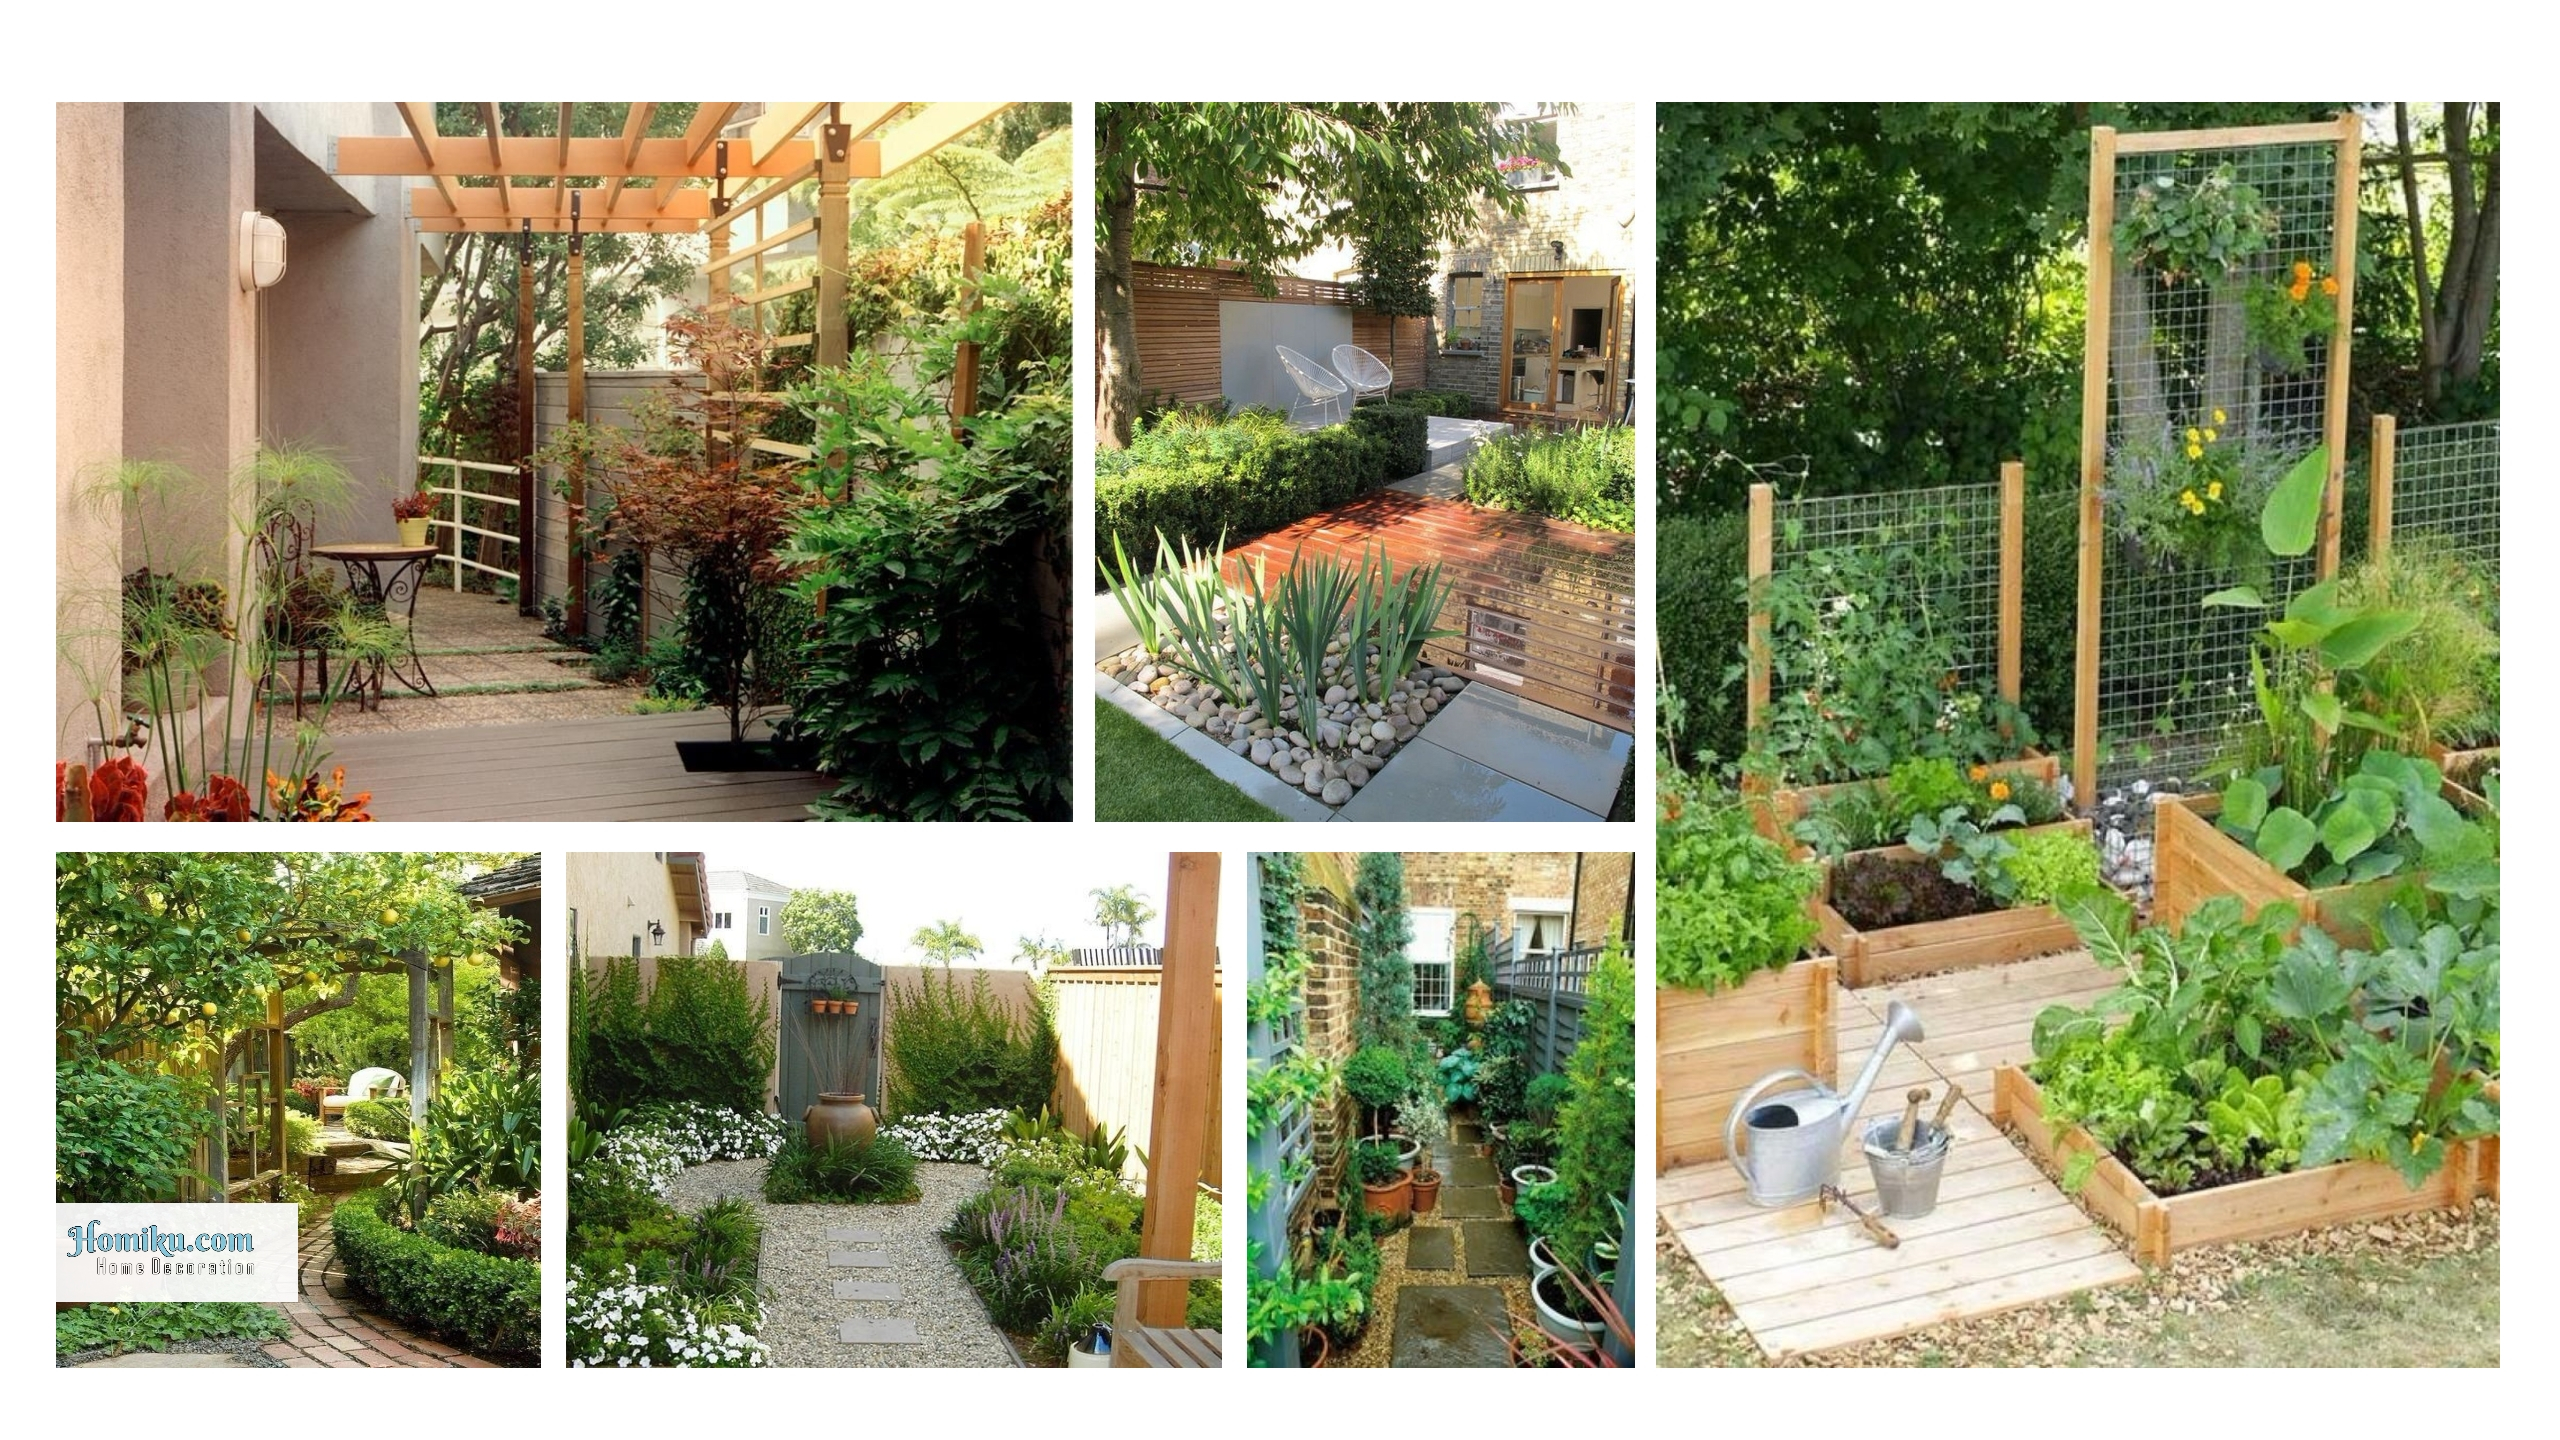 39 Best Small Backyard With Space Saving Decorating For Gardening within Small Backyard Decor